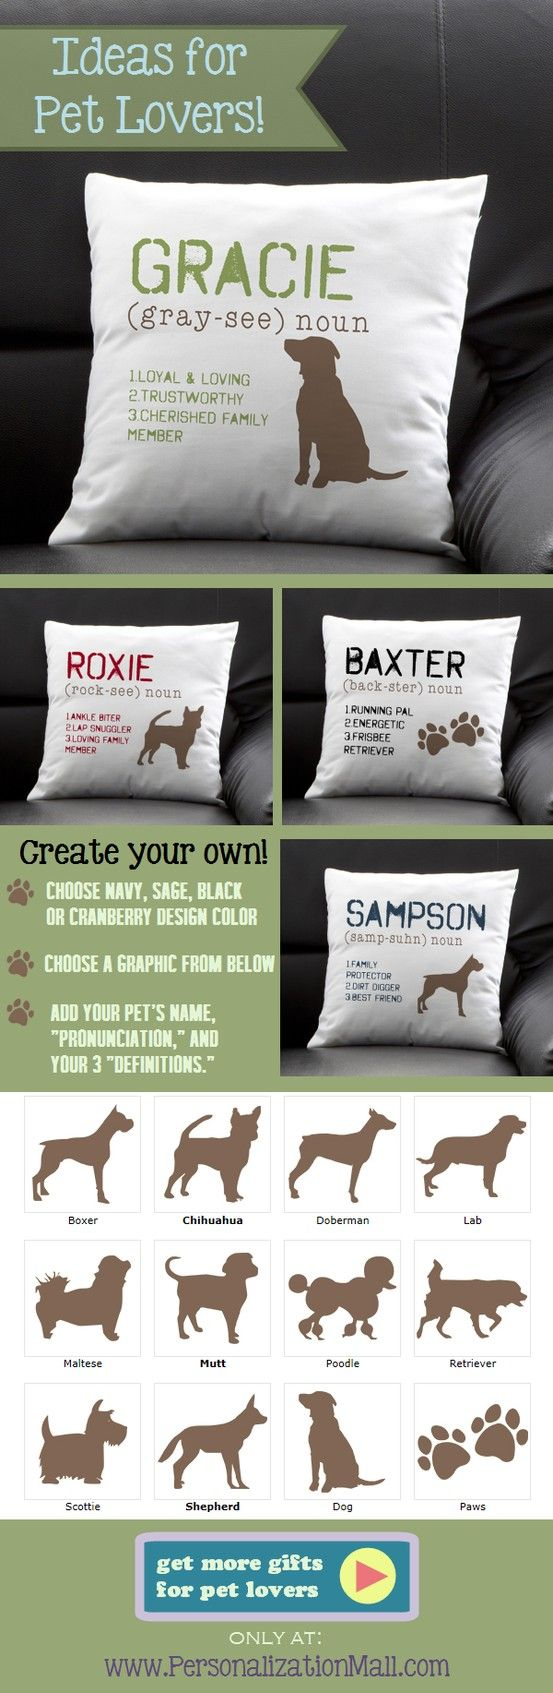 Personalized Dog Pillow 14 Definition Of My Dog Personalized